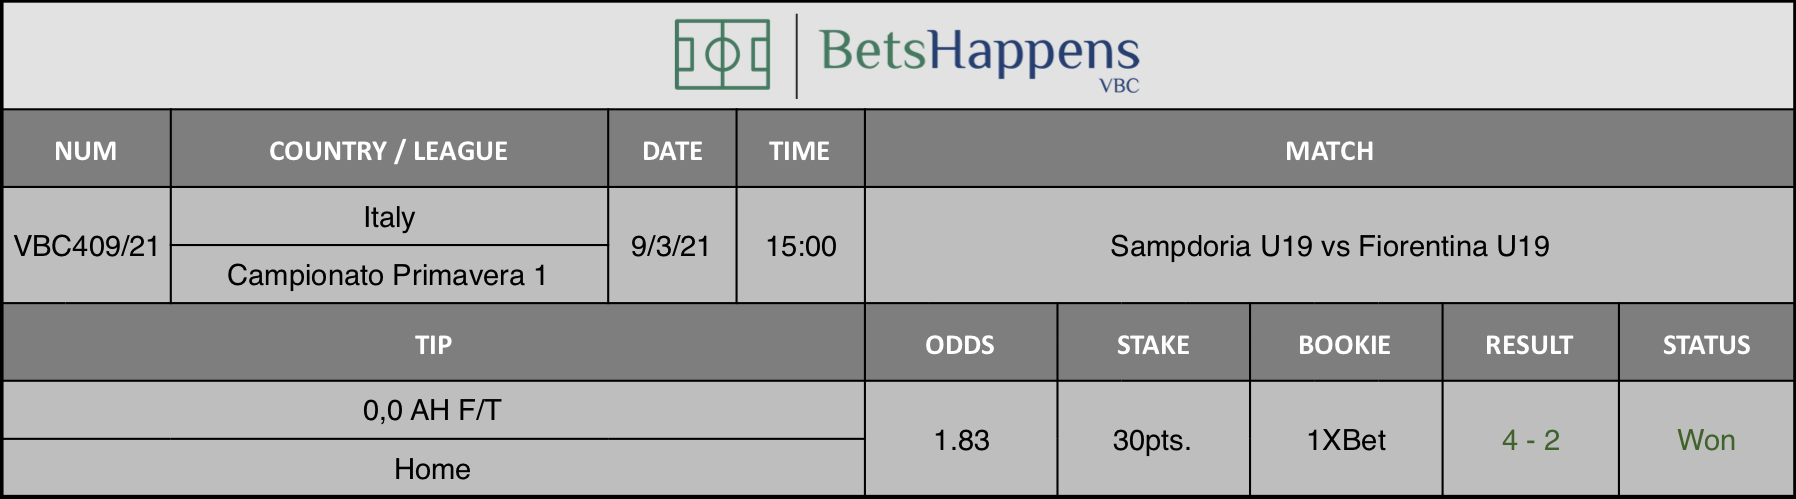 Results of our tip for the Sampdoria U19 vs Fiorentina U19 match where 0,0 AH F/T  Home is recommended.